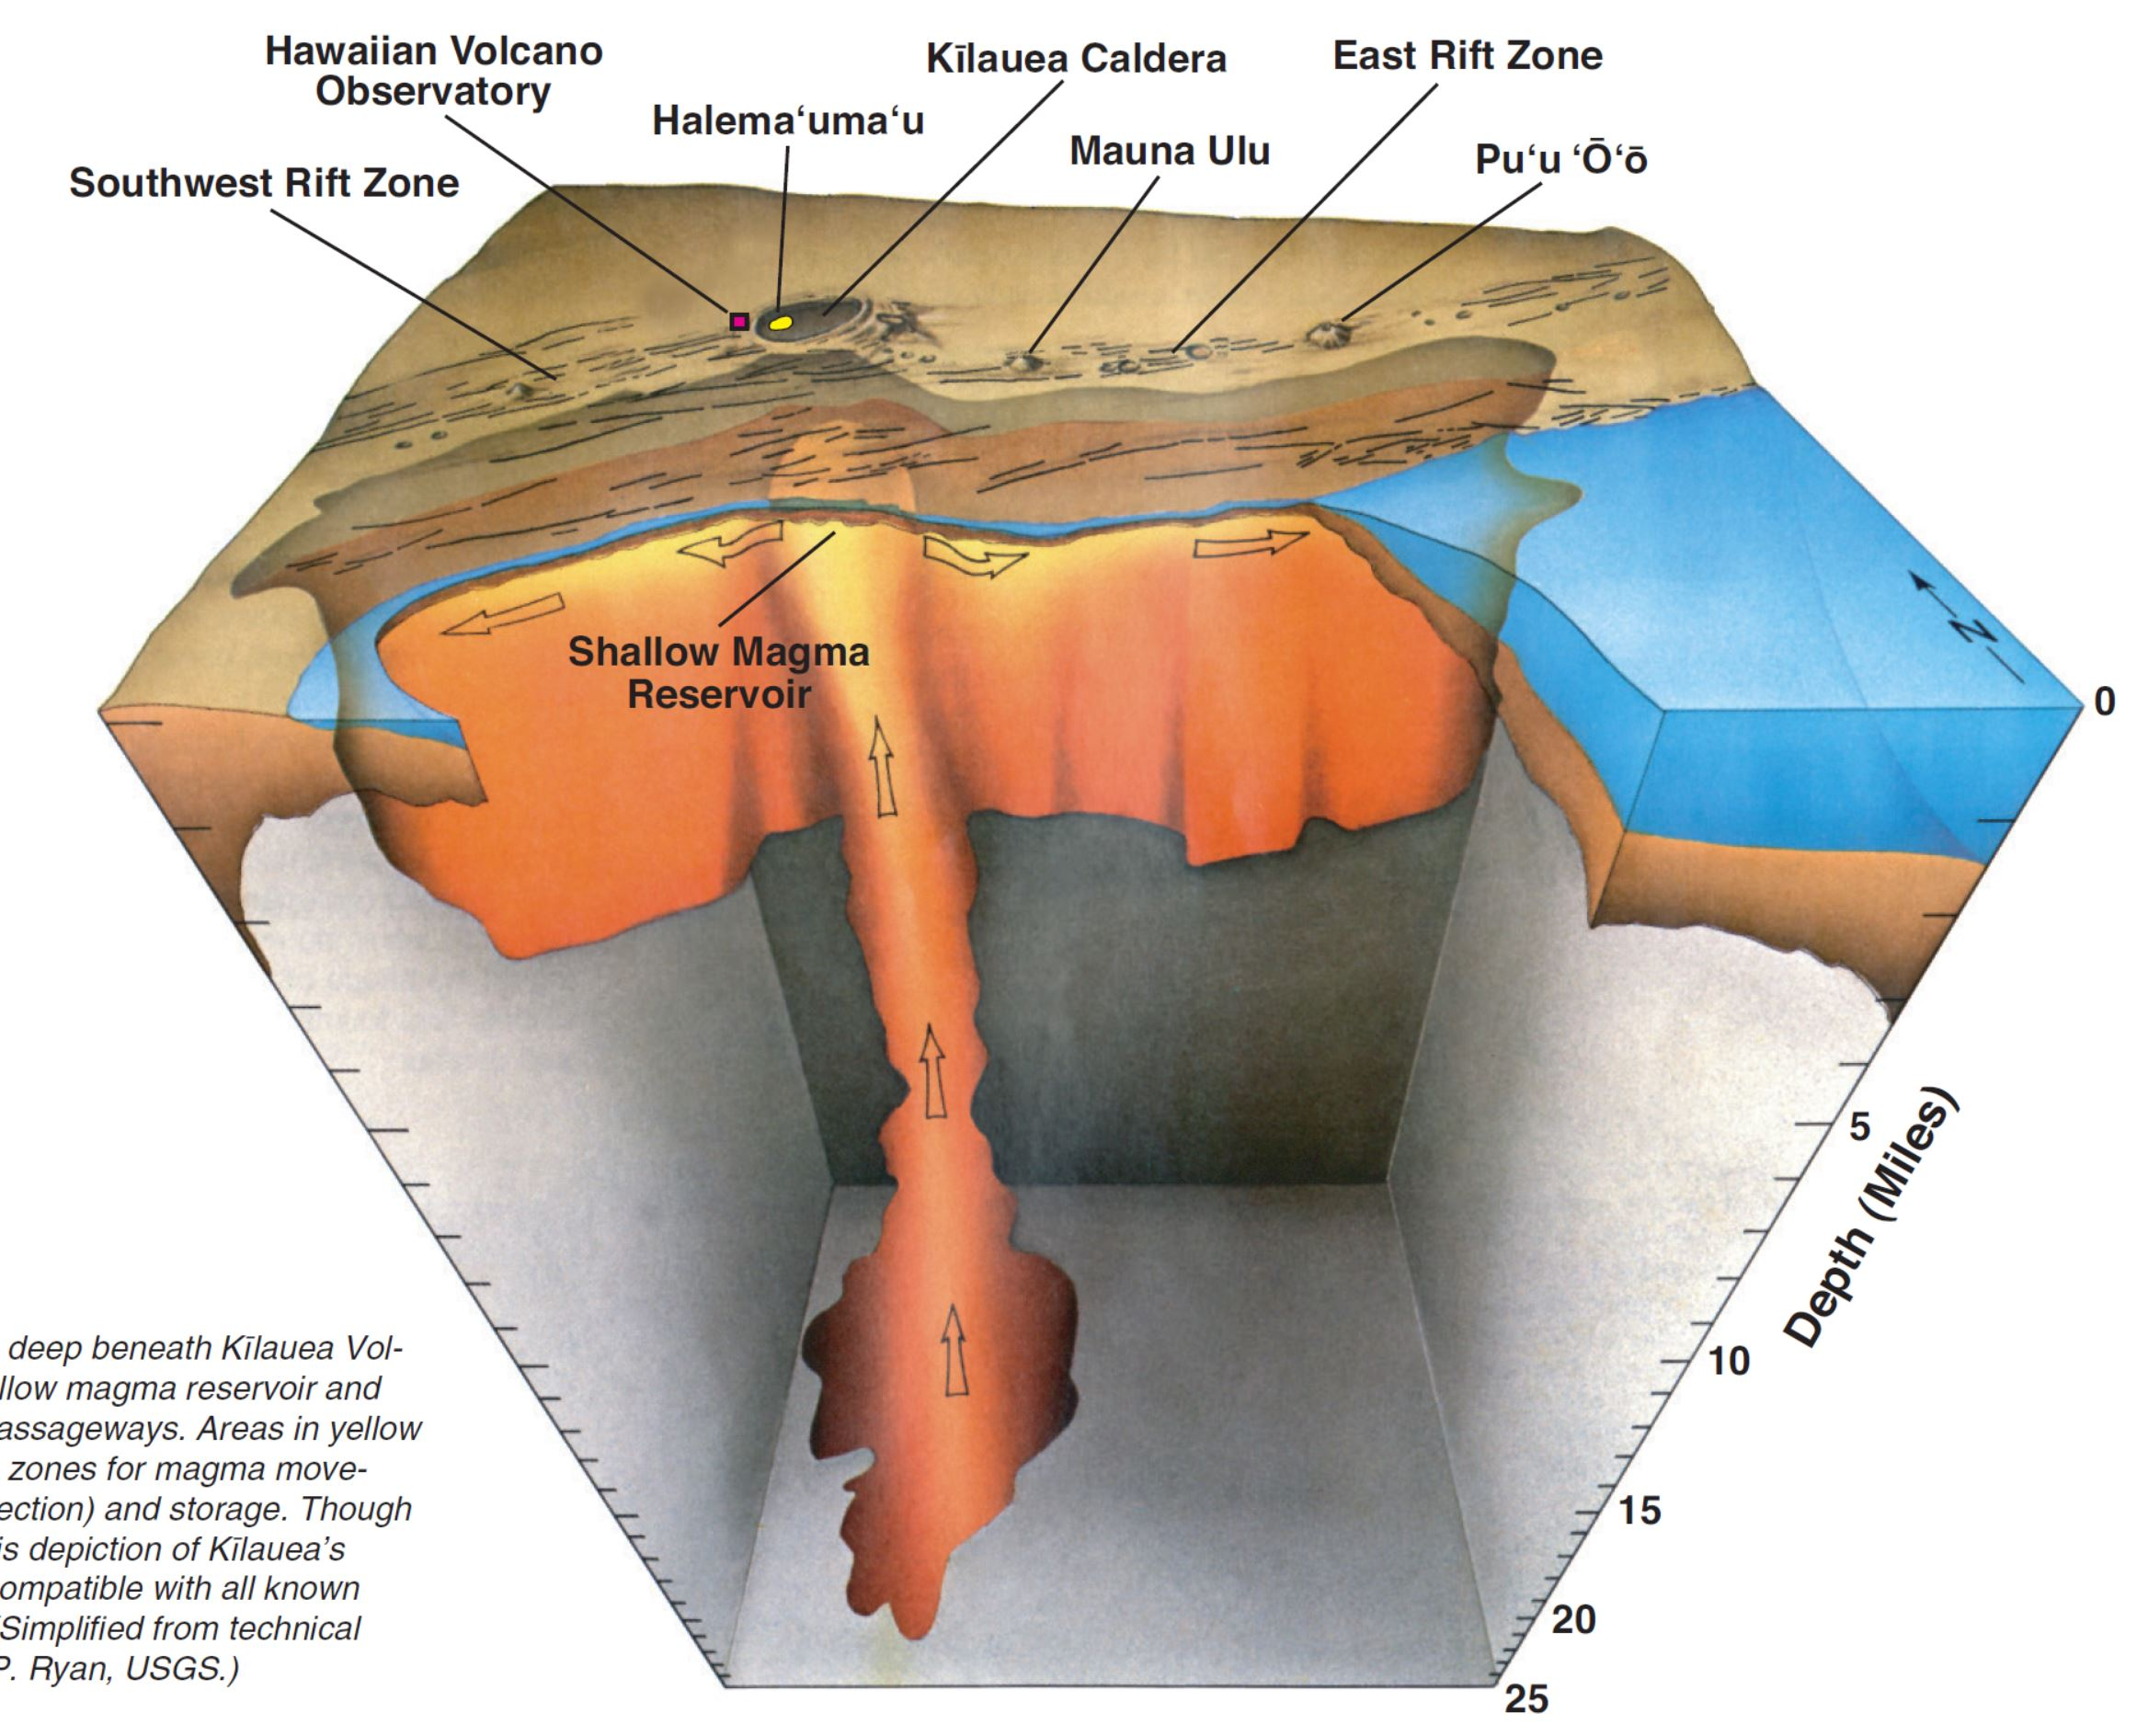 Jay Patton Online The Center Body And Range Of Technically Schematic Cutaway Showing Slide Cycle Case Ejection Cut Away View Looking Deep Beneath Klauea Volcano Shallow Magma Reservoir Principal Passageways Areas In Yellow Are Most